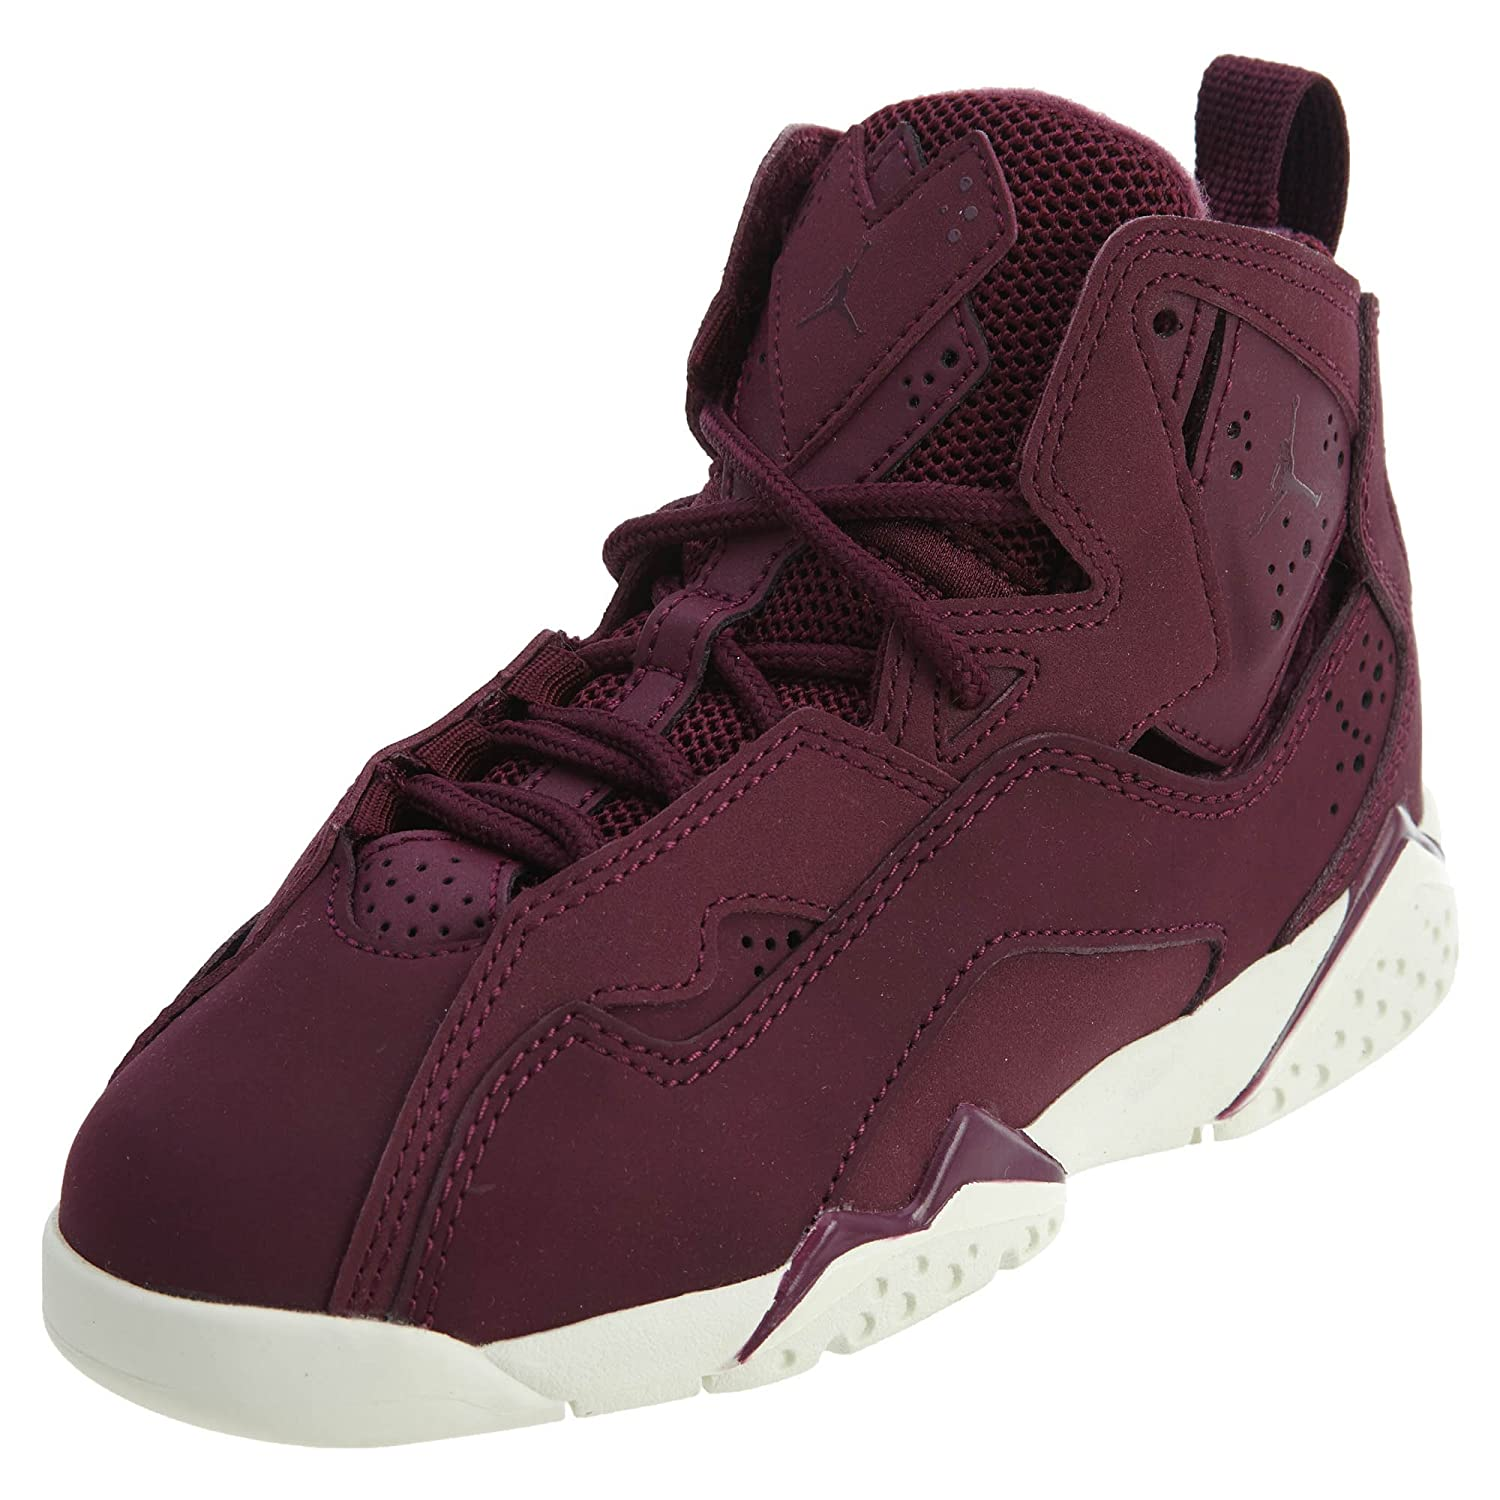 true flight jordan shoes women